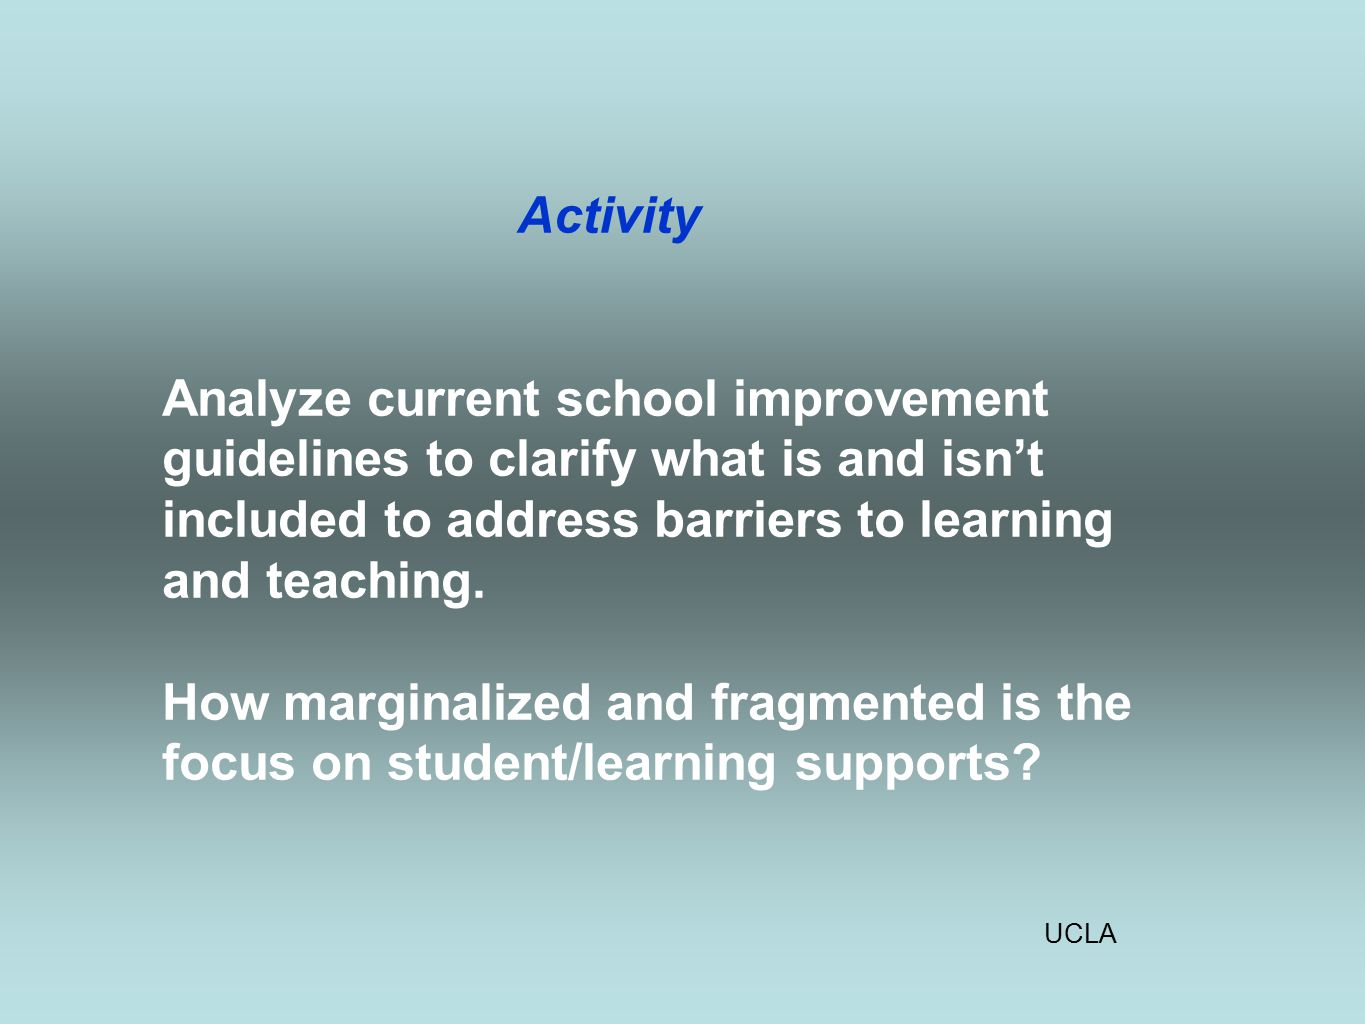 UCLA Activity Analyze current school improvement guidelines to clarify what is and isn't included to address barriers to learning and teaching.